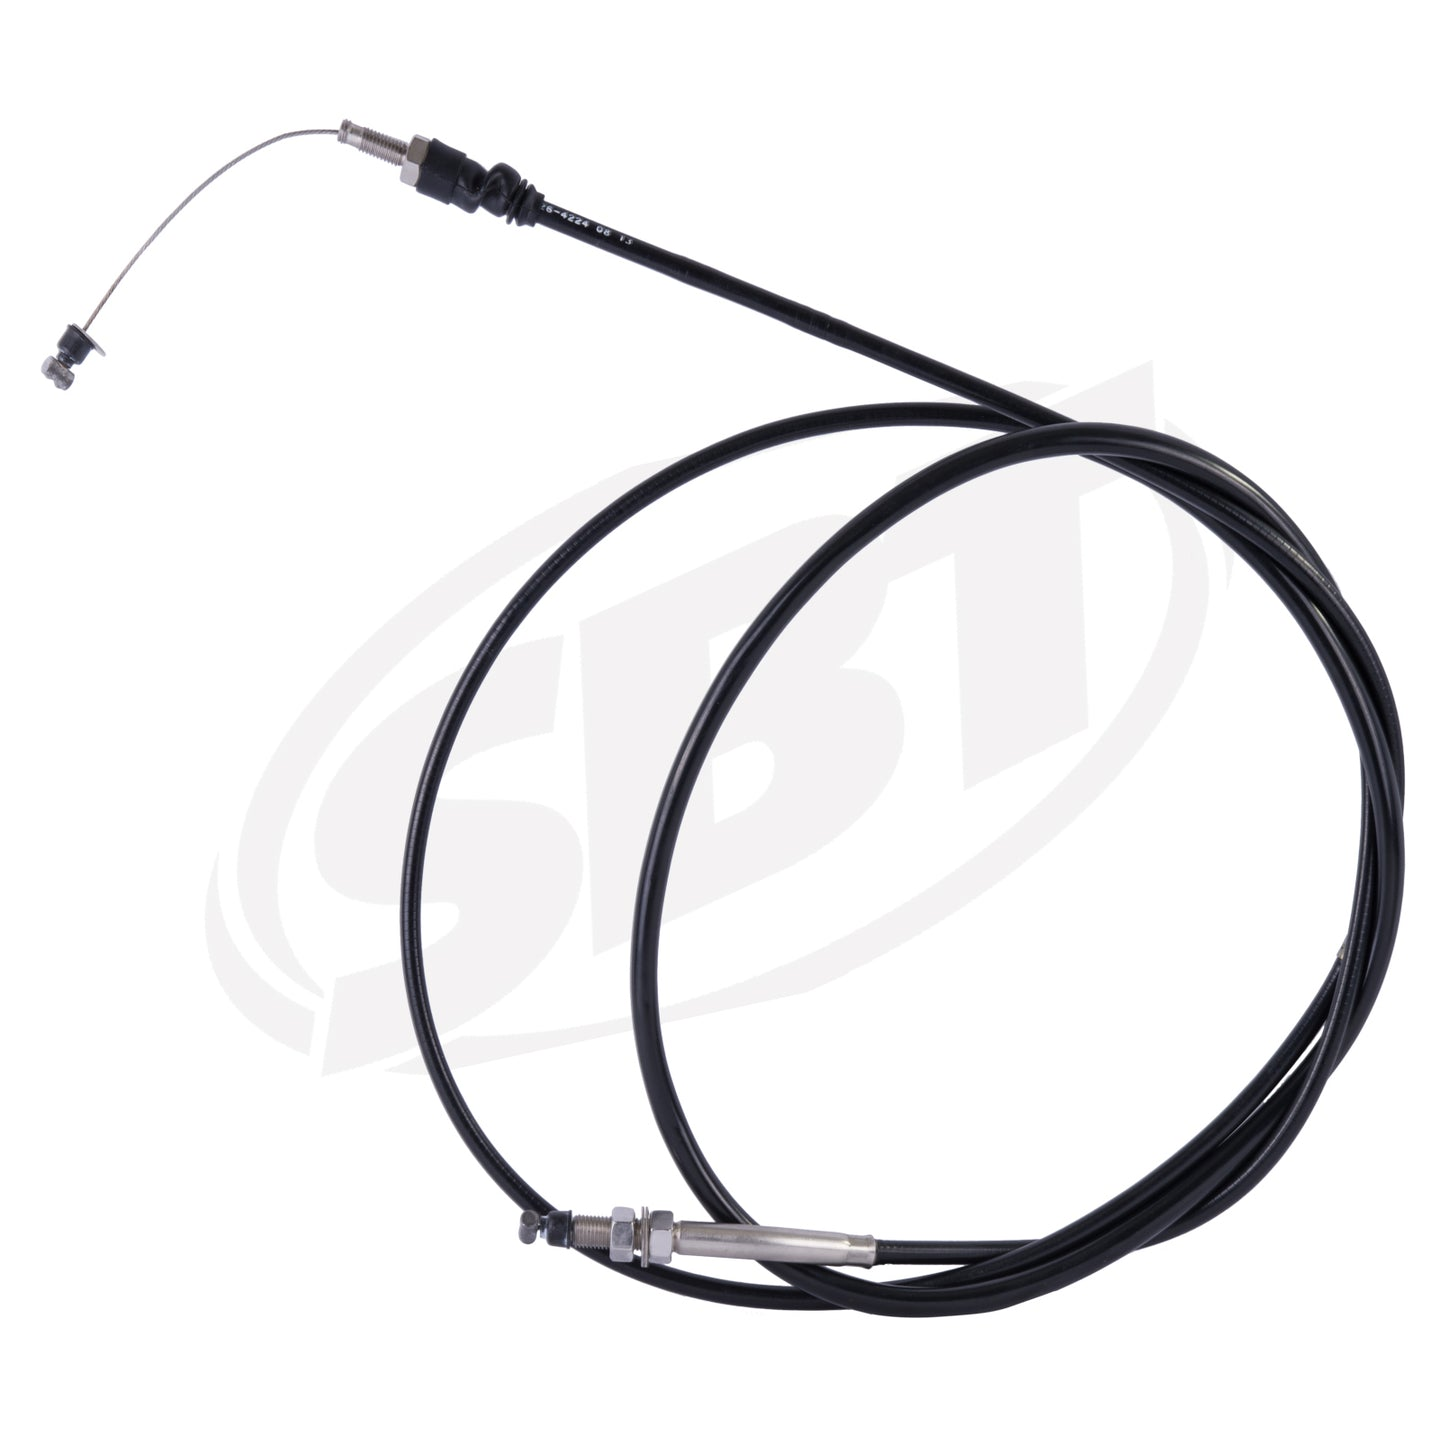 SBT Kawasaki Throttle Cable 750 SXI /750 Sxi Pro 54012-3753 1995 1996 1997 1998 1999 2000 2001 2002